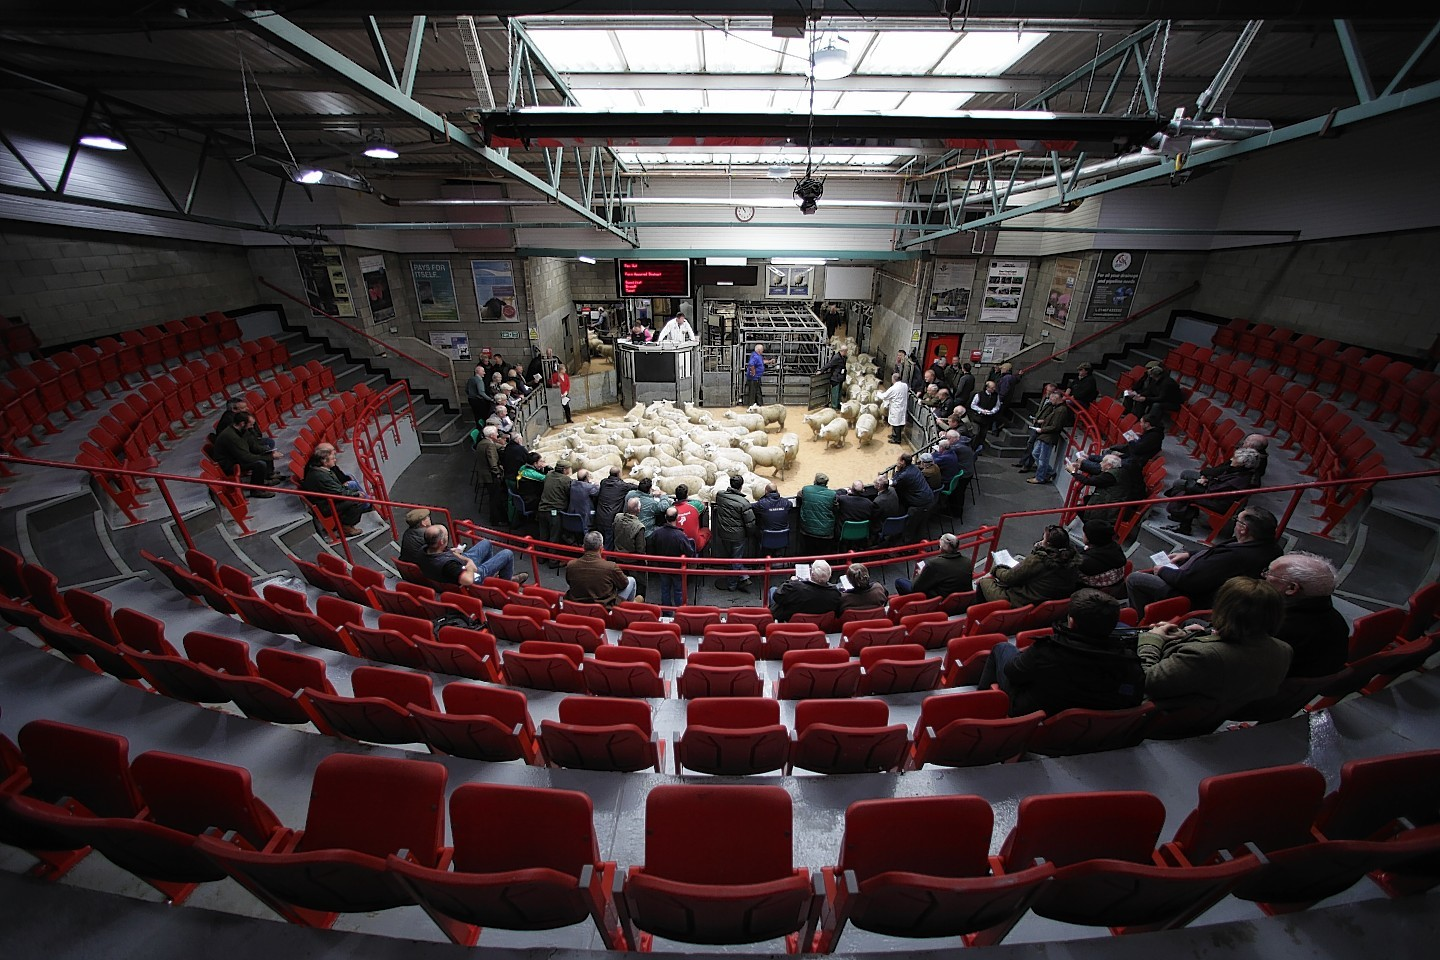 The number of livestock sold in Scottish auction marts increased in 2016.